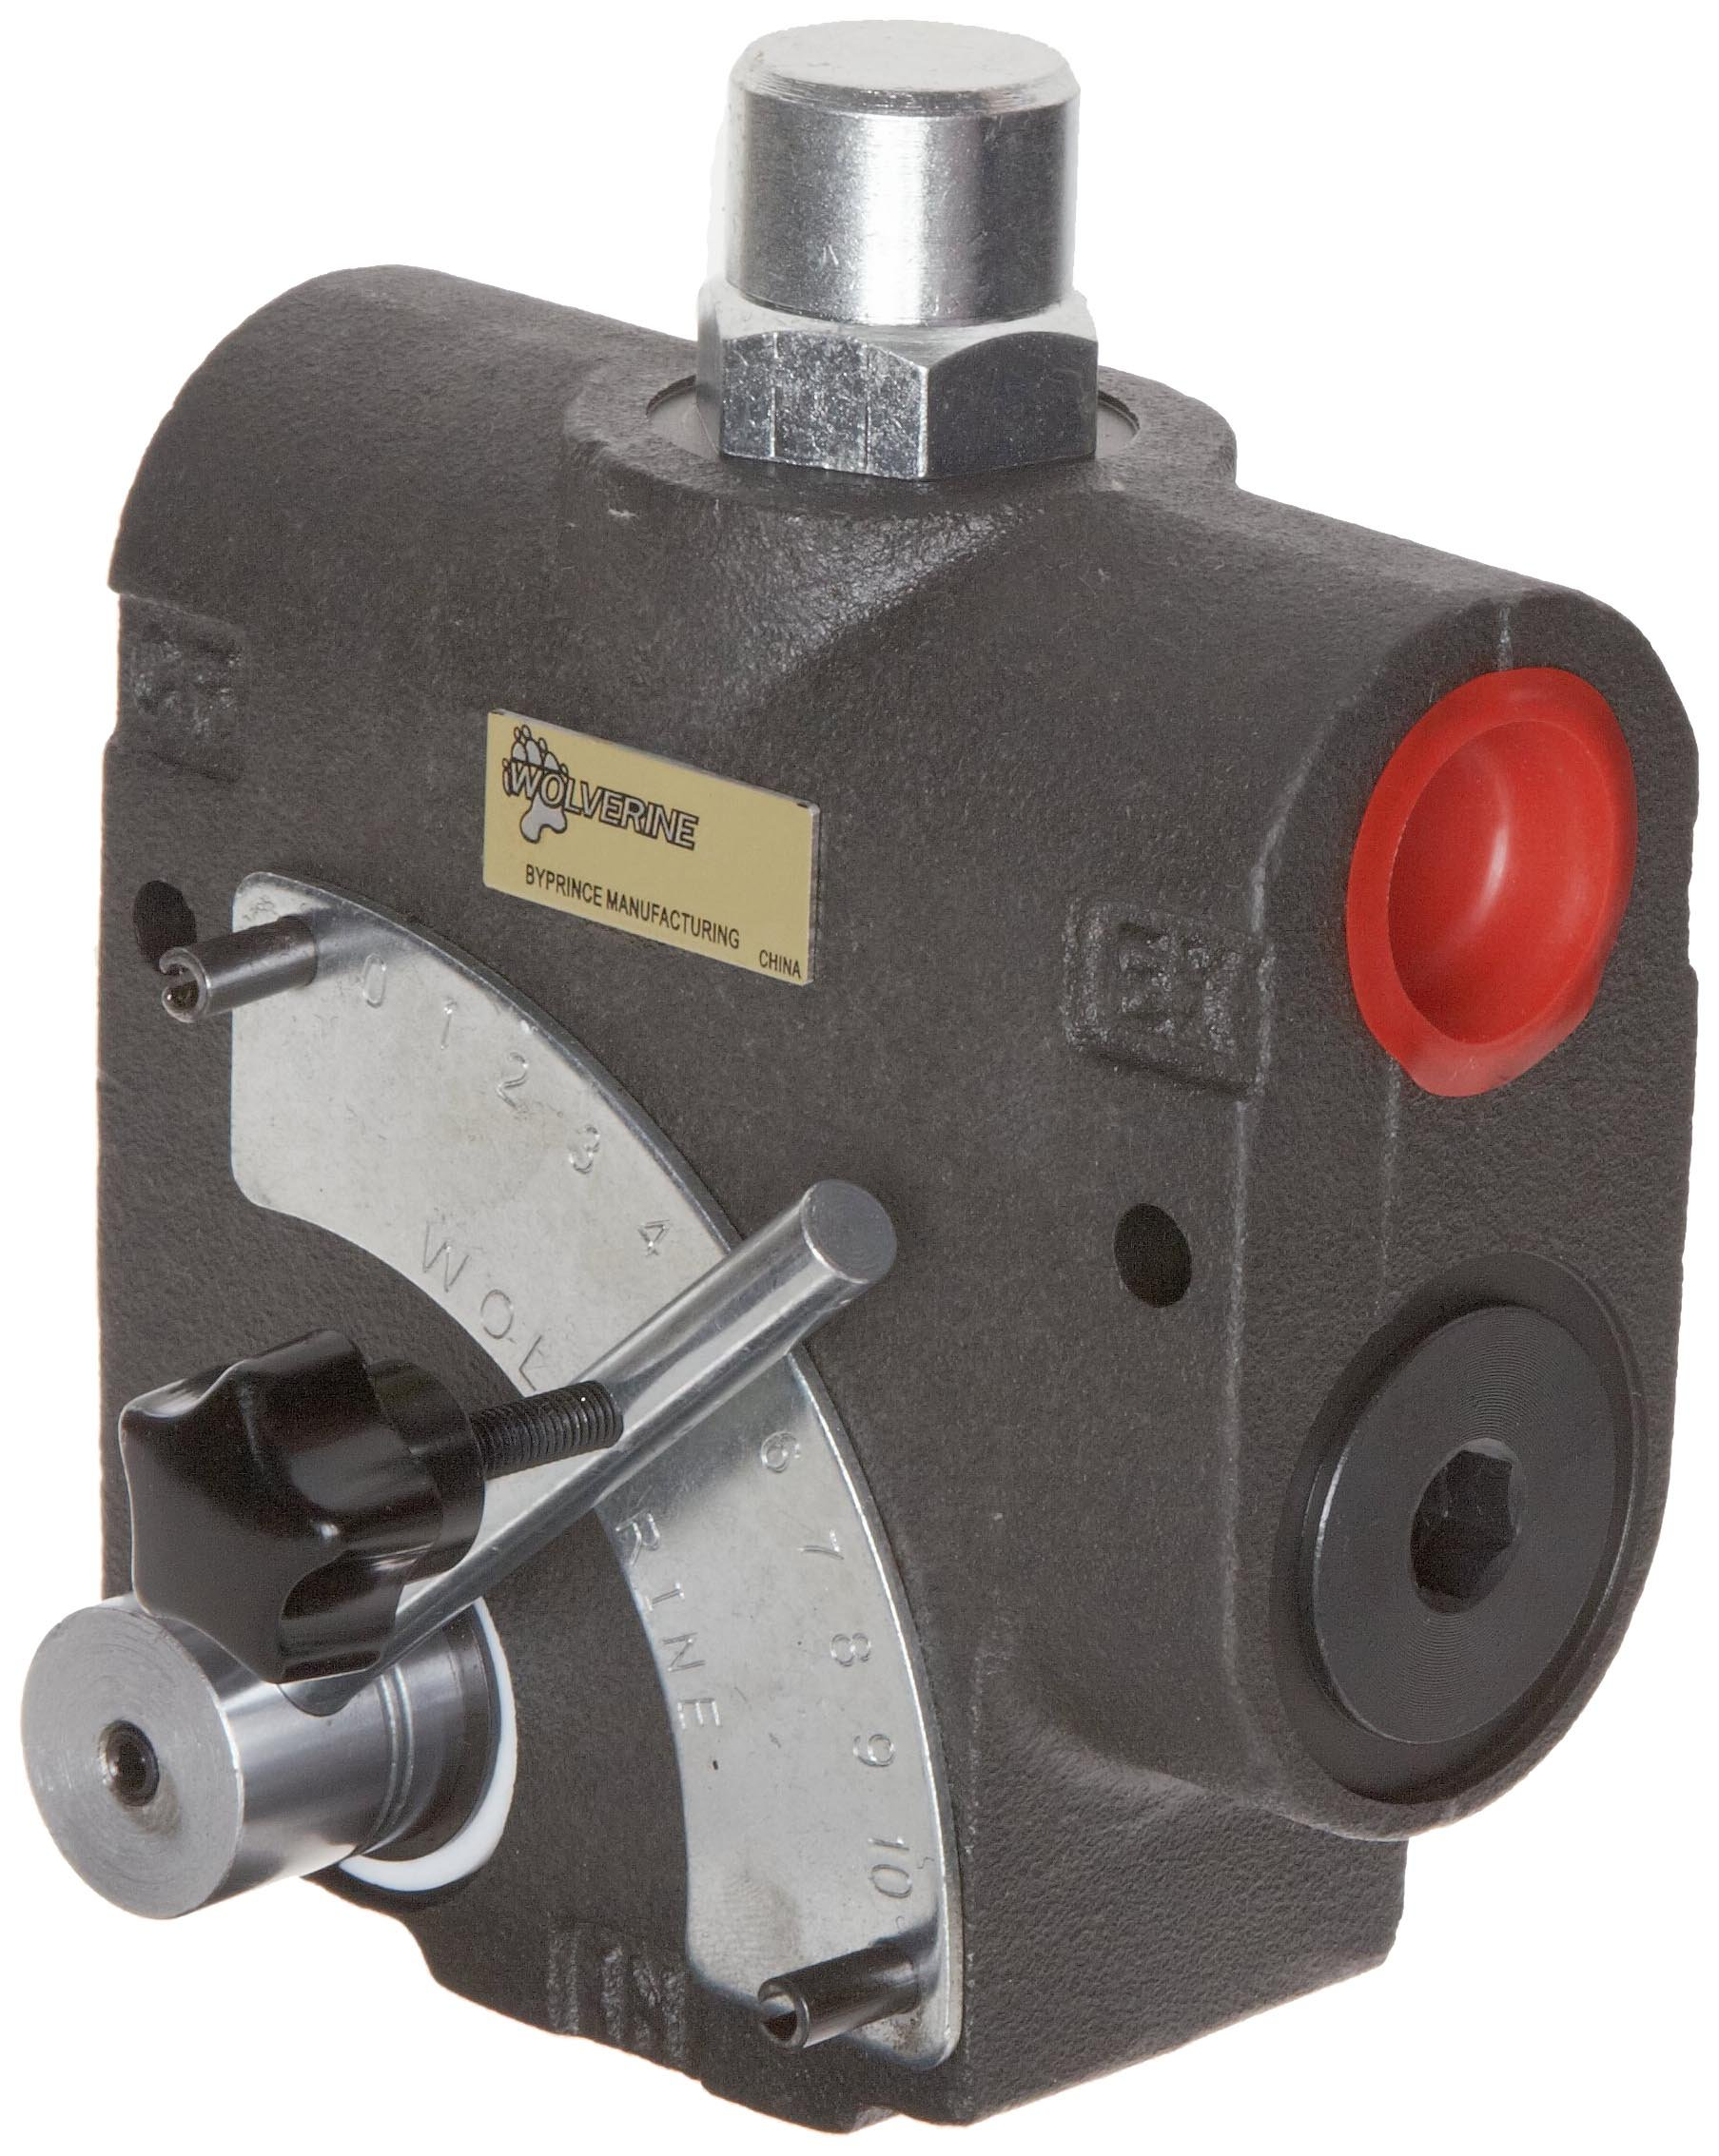 Prince WR-1950-16 Wolverine Adjustible Flow Control Valve with Inlet Relief at 1500 psi, 16 gpm Max Flow, 1/2'' NPTF